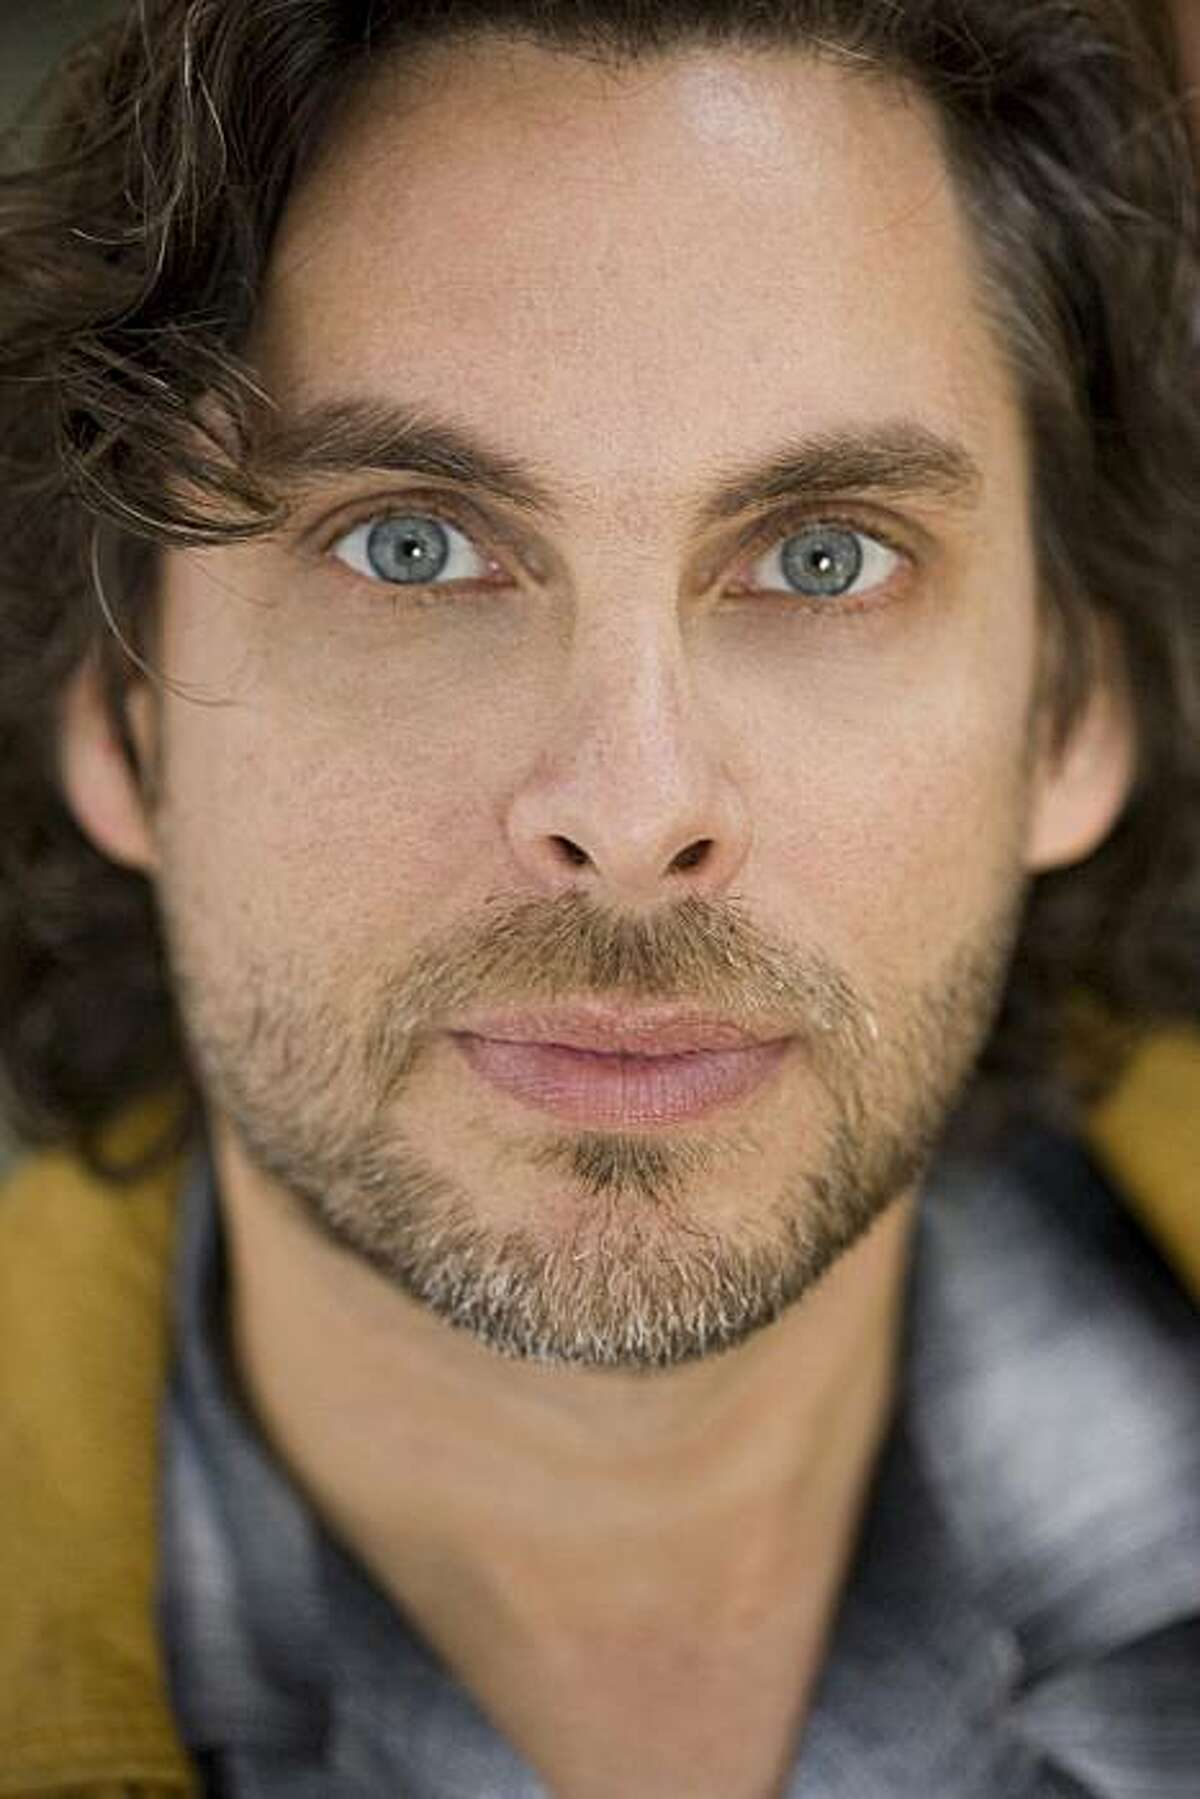 Michael Chabon, outstanding author of novels including The Amazing Adventures of Kavalier and Clay, The Mysteries of Pittsburgh, The Wonder Boys, and the Yiddish Policeman�s Union, will share in a lively evening of conversation on Monday, January 5 at Berkeley Repertory Theatre, 2025 Addison Street, Berkeley.